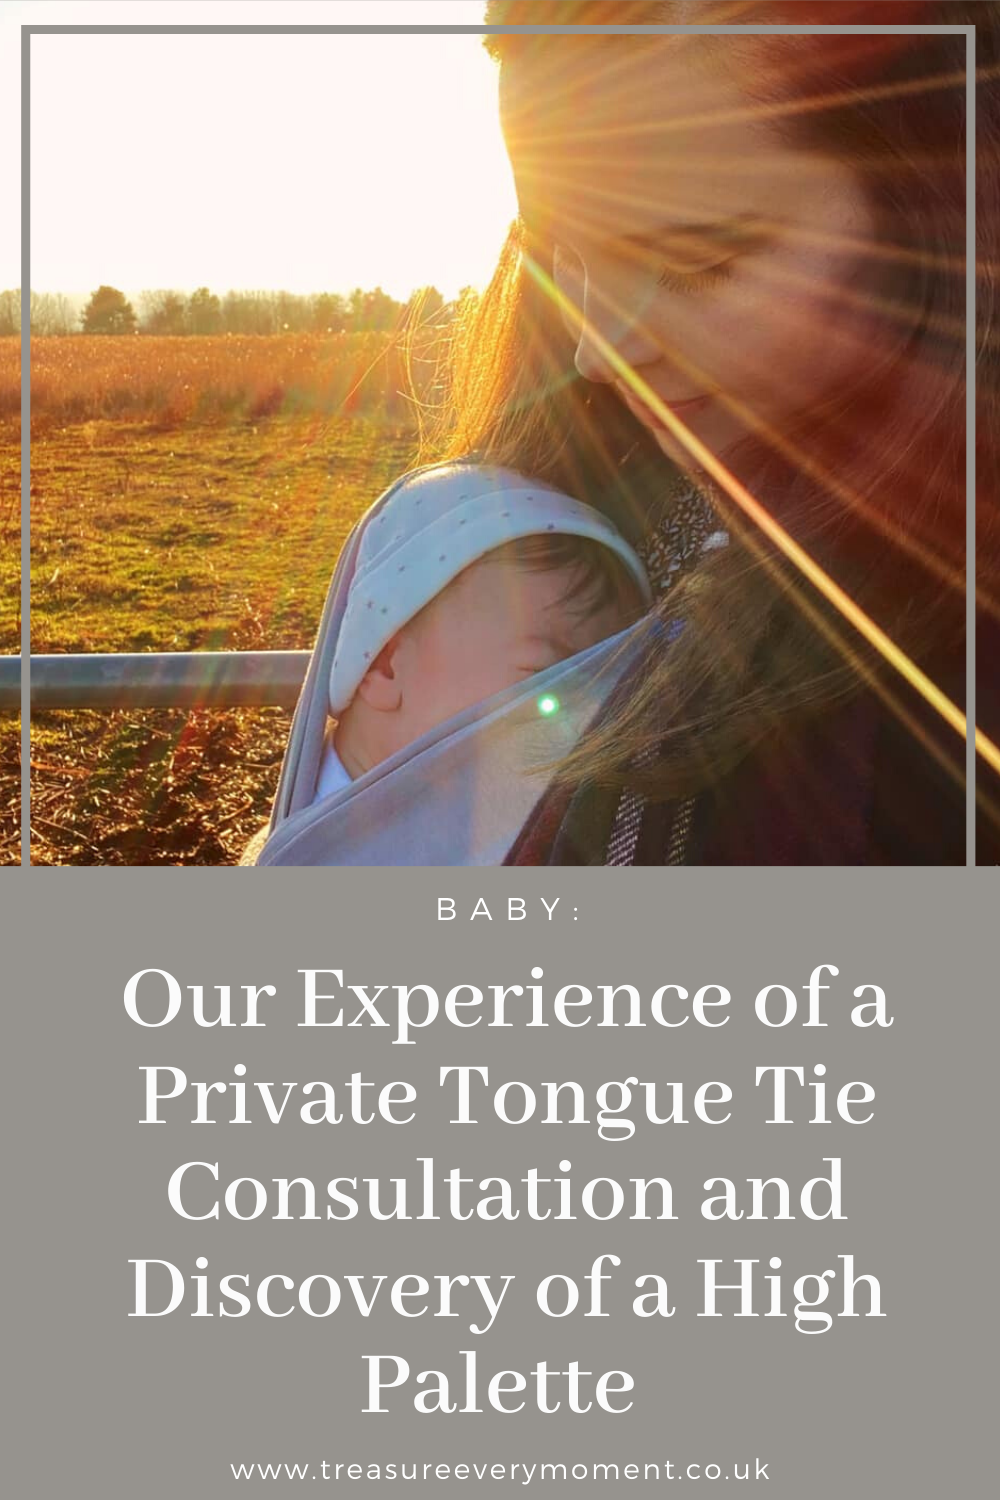 BABY: Our Experience of a Private Tongue Tie Consultation and Discovery of a High Palette